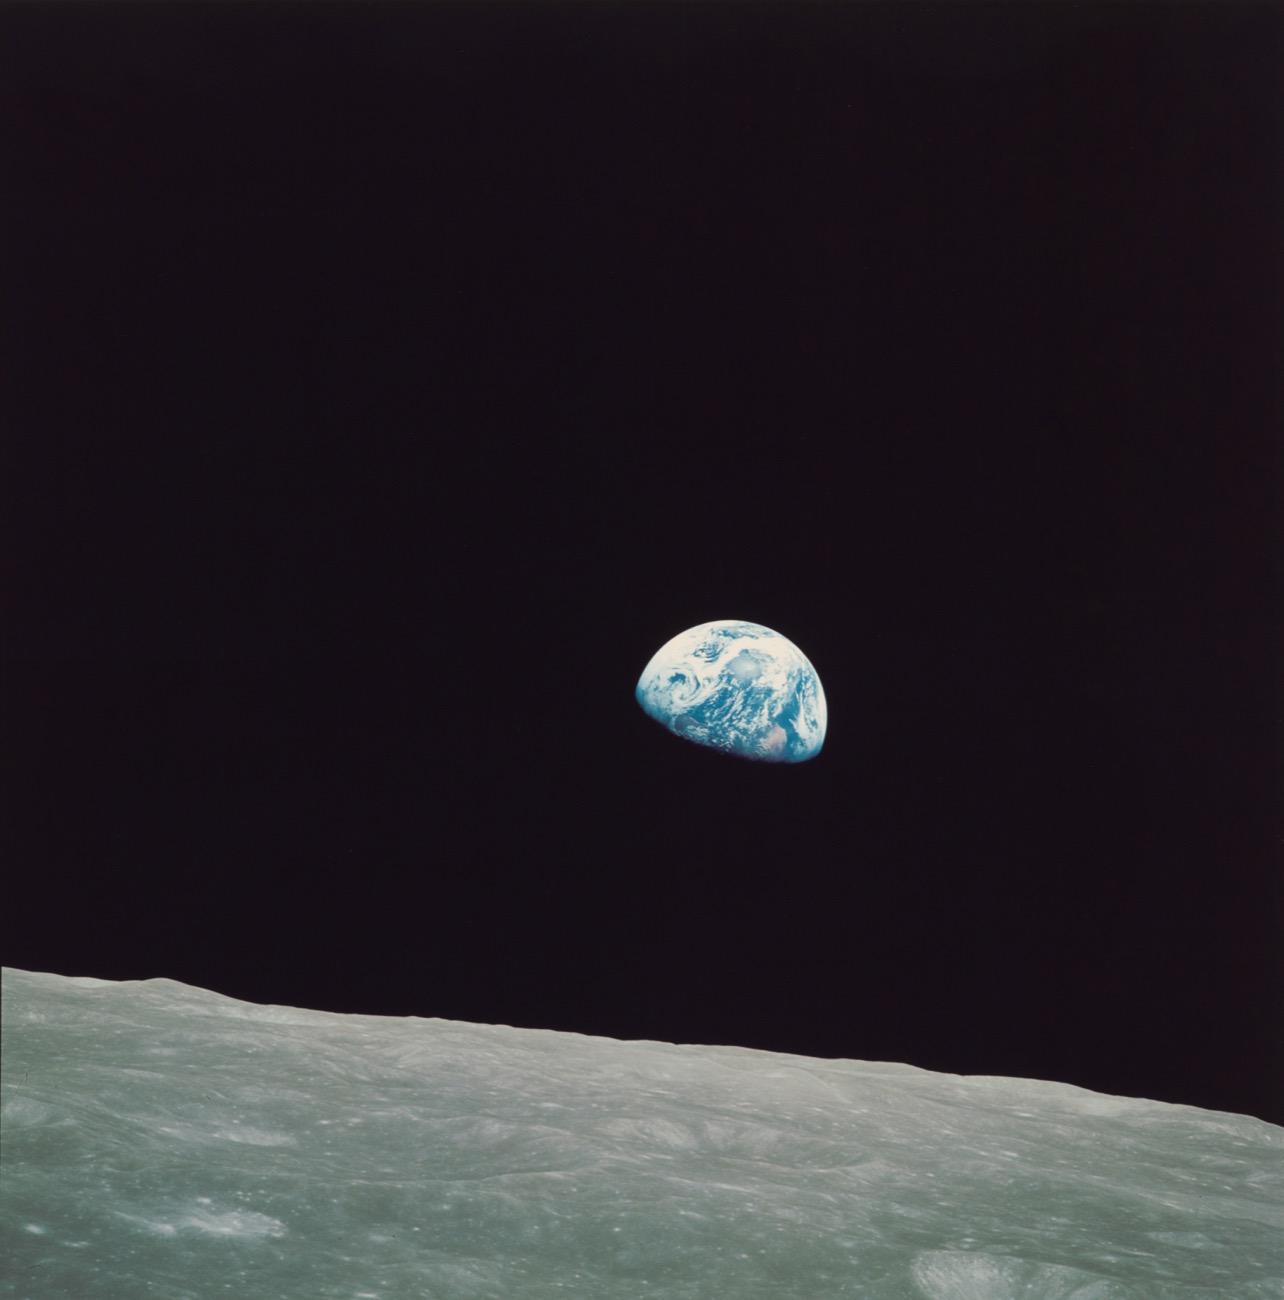 the curve of the moon in the foreground with the earth, half in shadow, sitting in the blackness of space